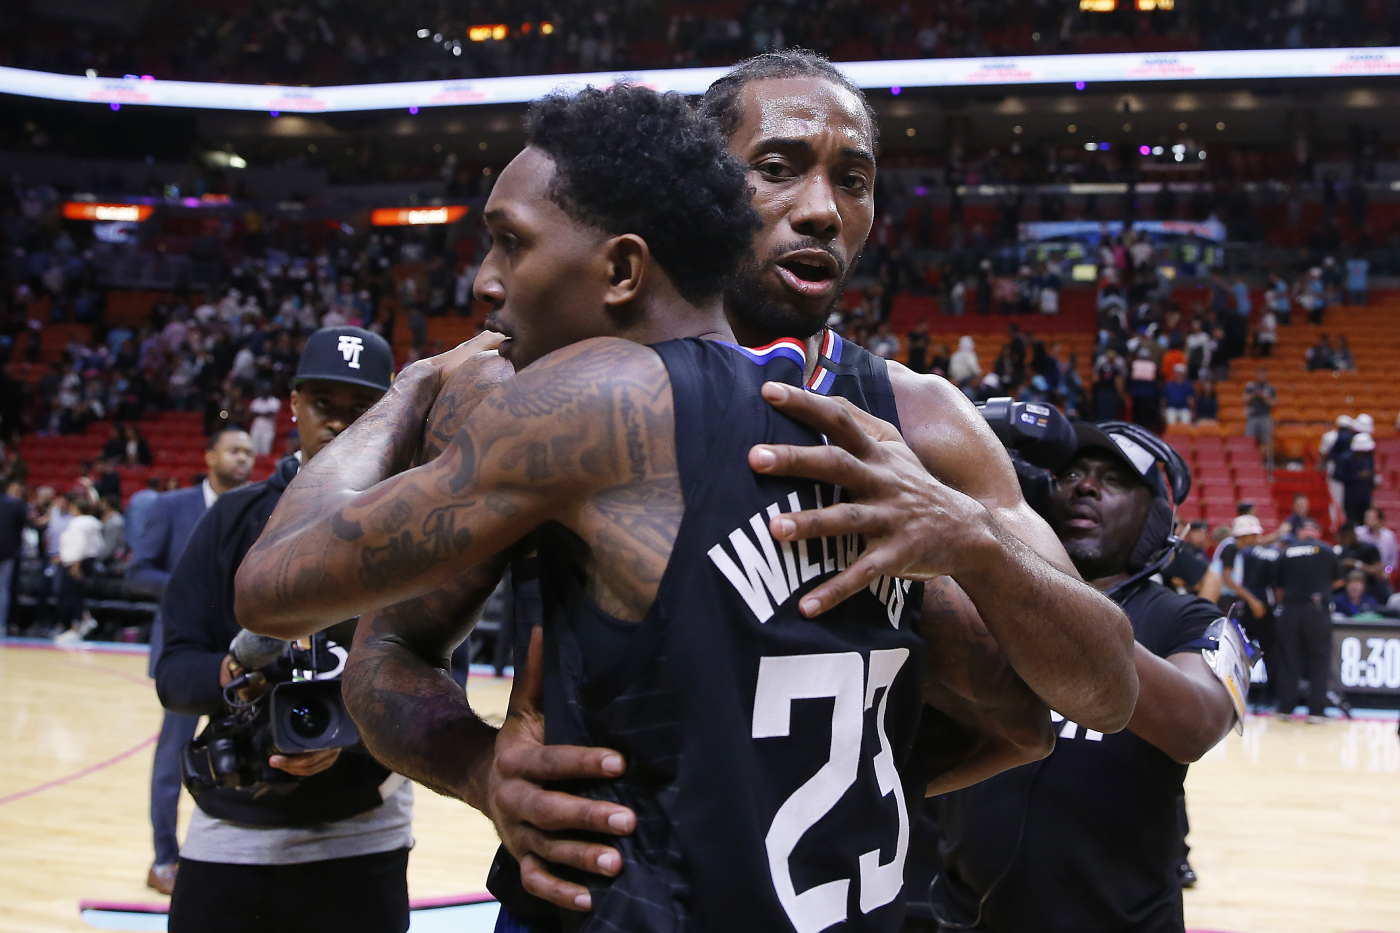 The LA Clippers have already lost Montrezl Harrell. Now, they could trade away their $8 million man, Lou Williams.The LA Clippers have already lost Montrezl Harrell. Now, they could trade away their $8 million man, Lou Williams.